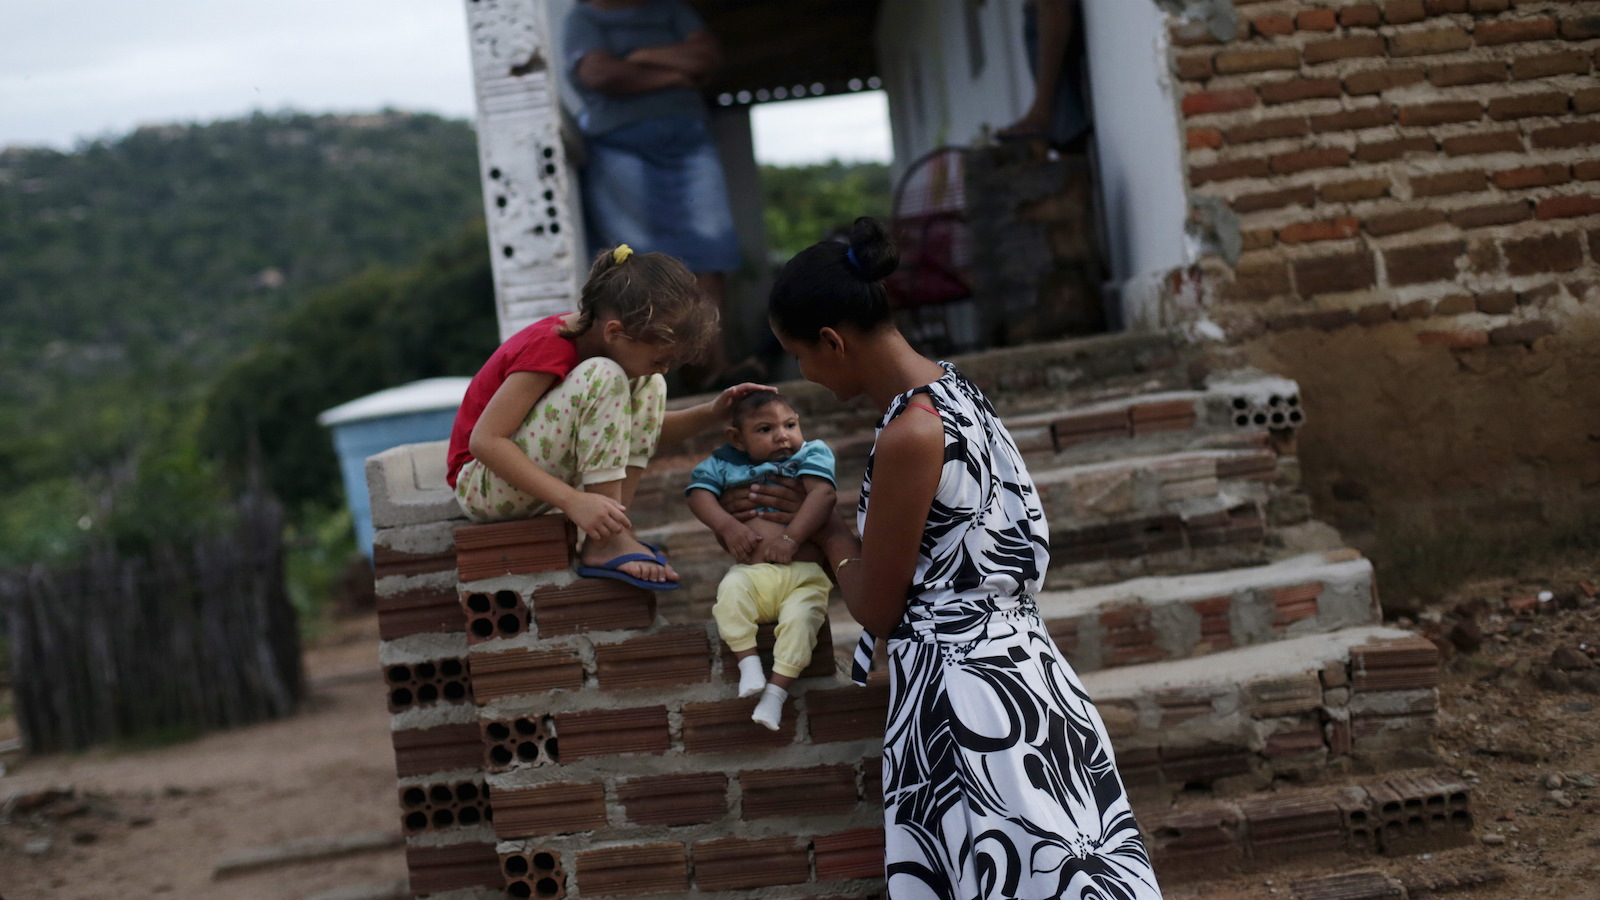 Miriam Araujo, 25, holds Lucas, her 4-months old second child and born with microcephaly as her daughter Maisa, 6 caresses him, outside their house, in Sao Jose dos Cordeiros, Brazil , February 16, 2016.  Picture taken on February 16, 2016. REUTERS/Ricardo Moraes      TPX IMAGES OF THE DAY      - RTX287J2